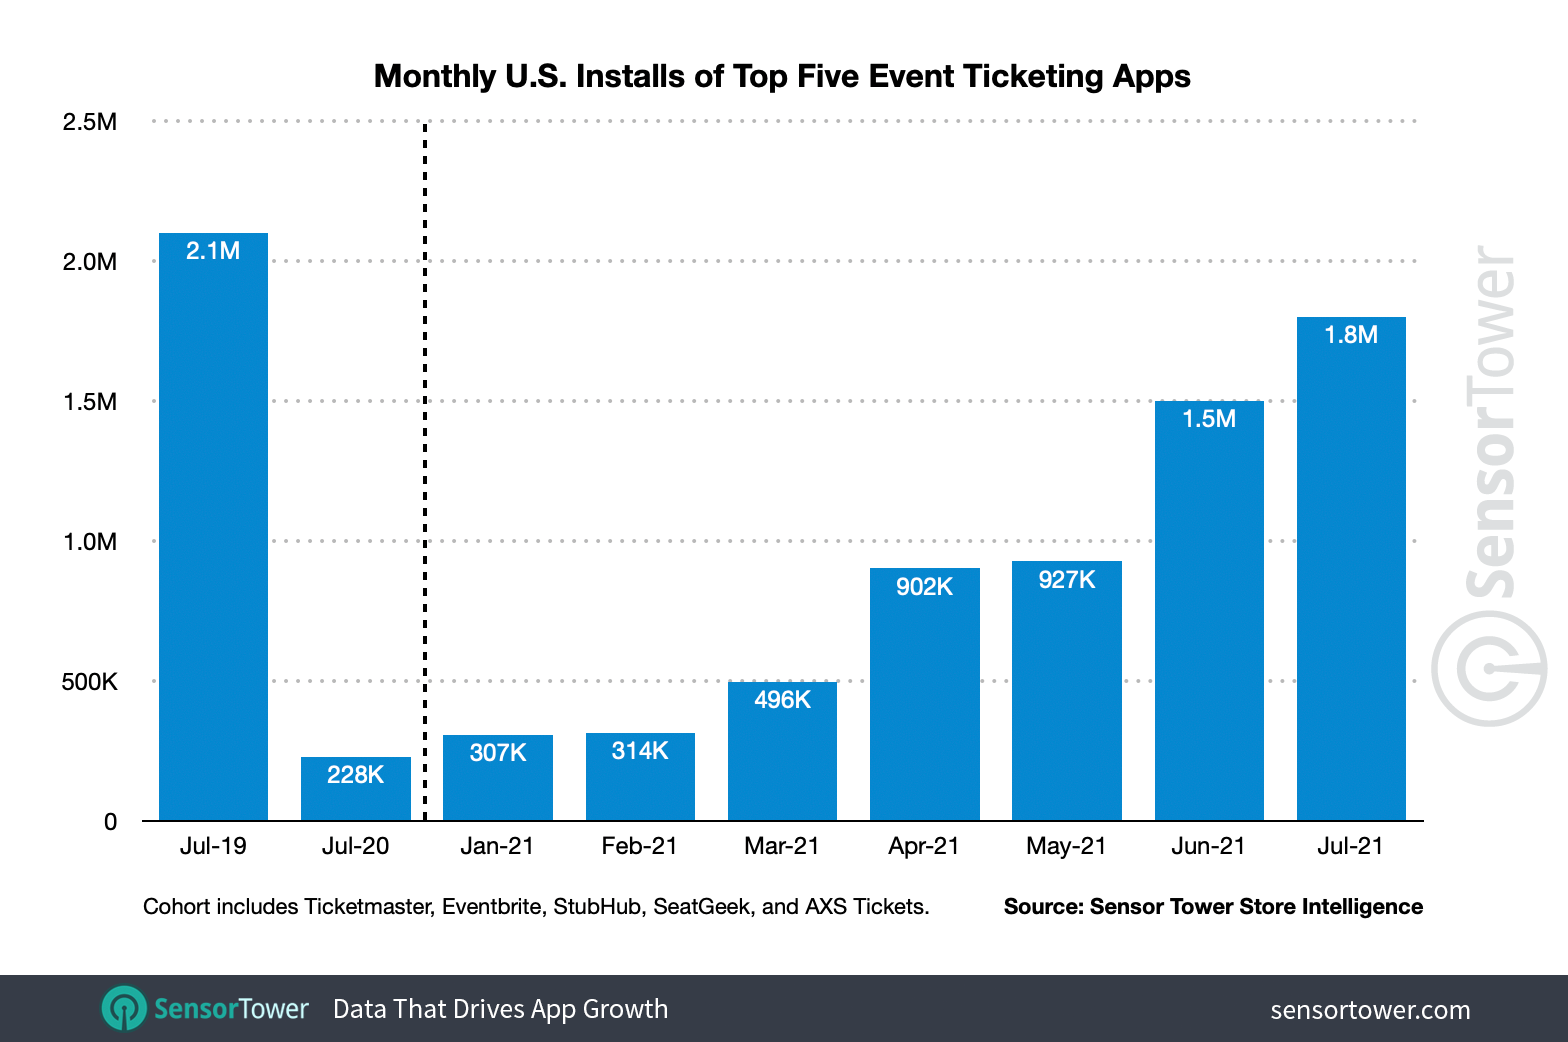 U.S. monthly installs of the top event ticketing apps